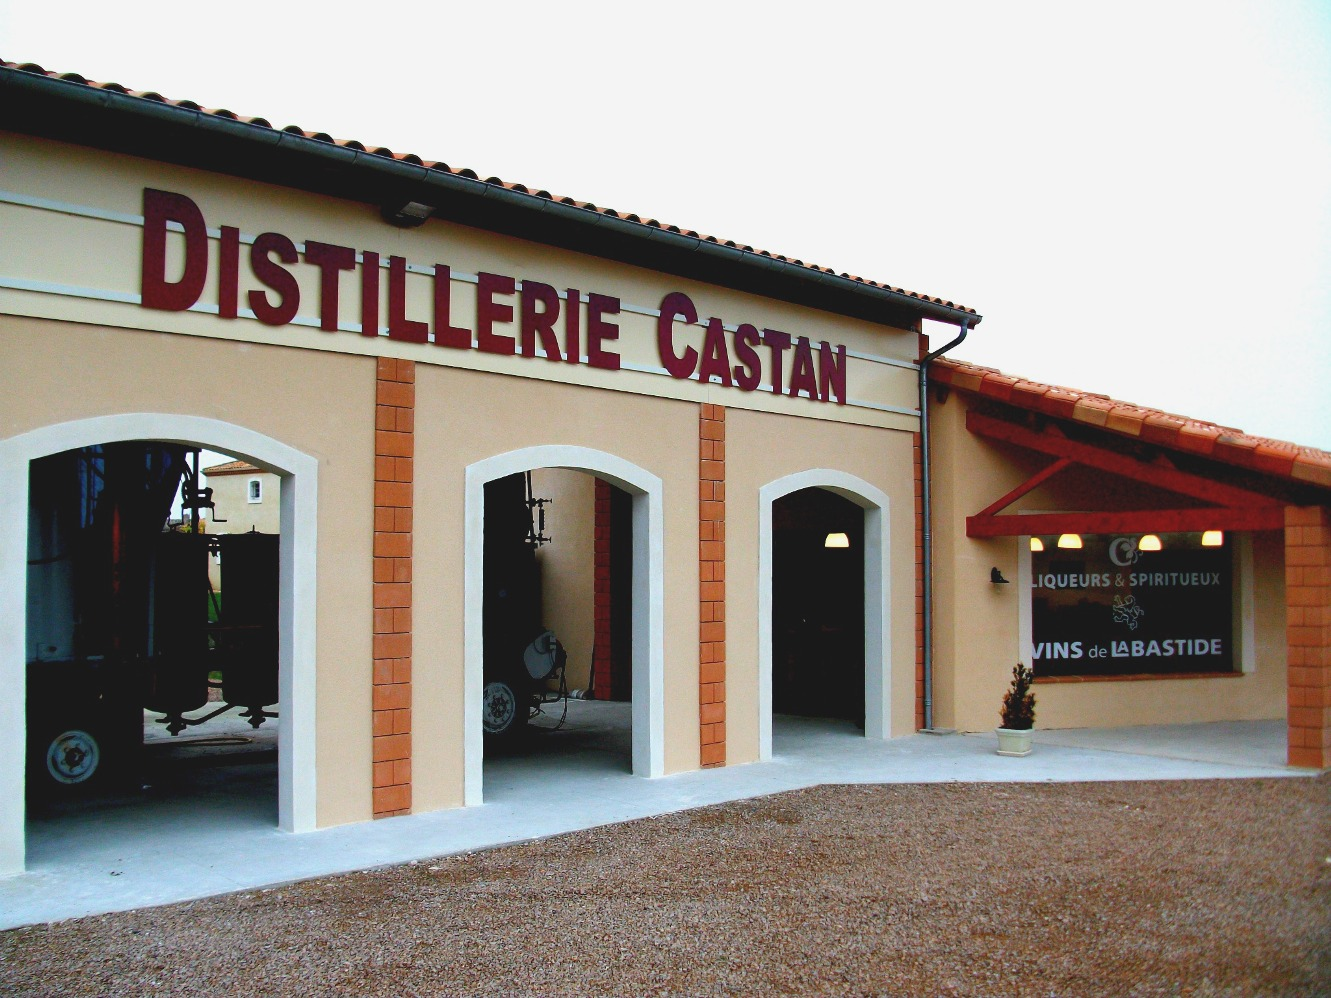 http://www.investinfrance.co.uk/wp-content/uploads/2018/01/distillerie_exterieur_015.jpg